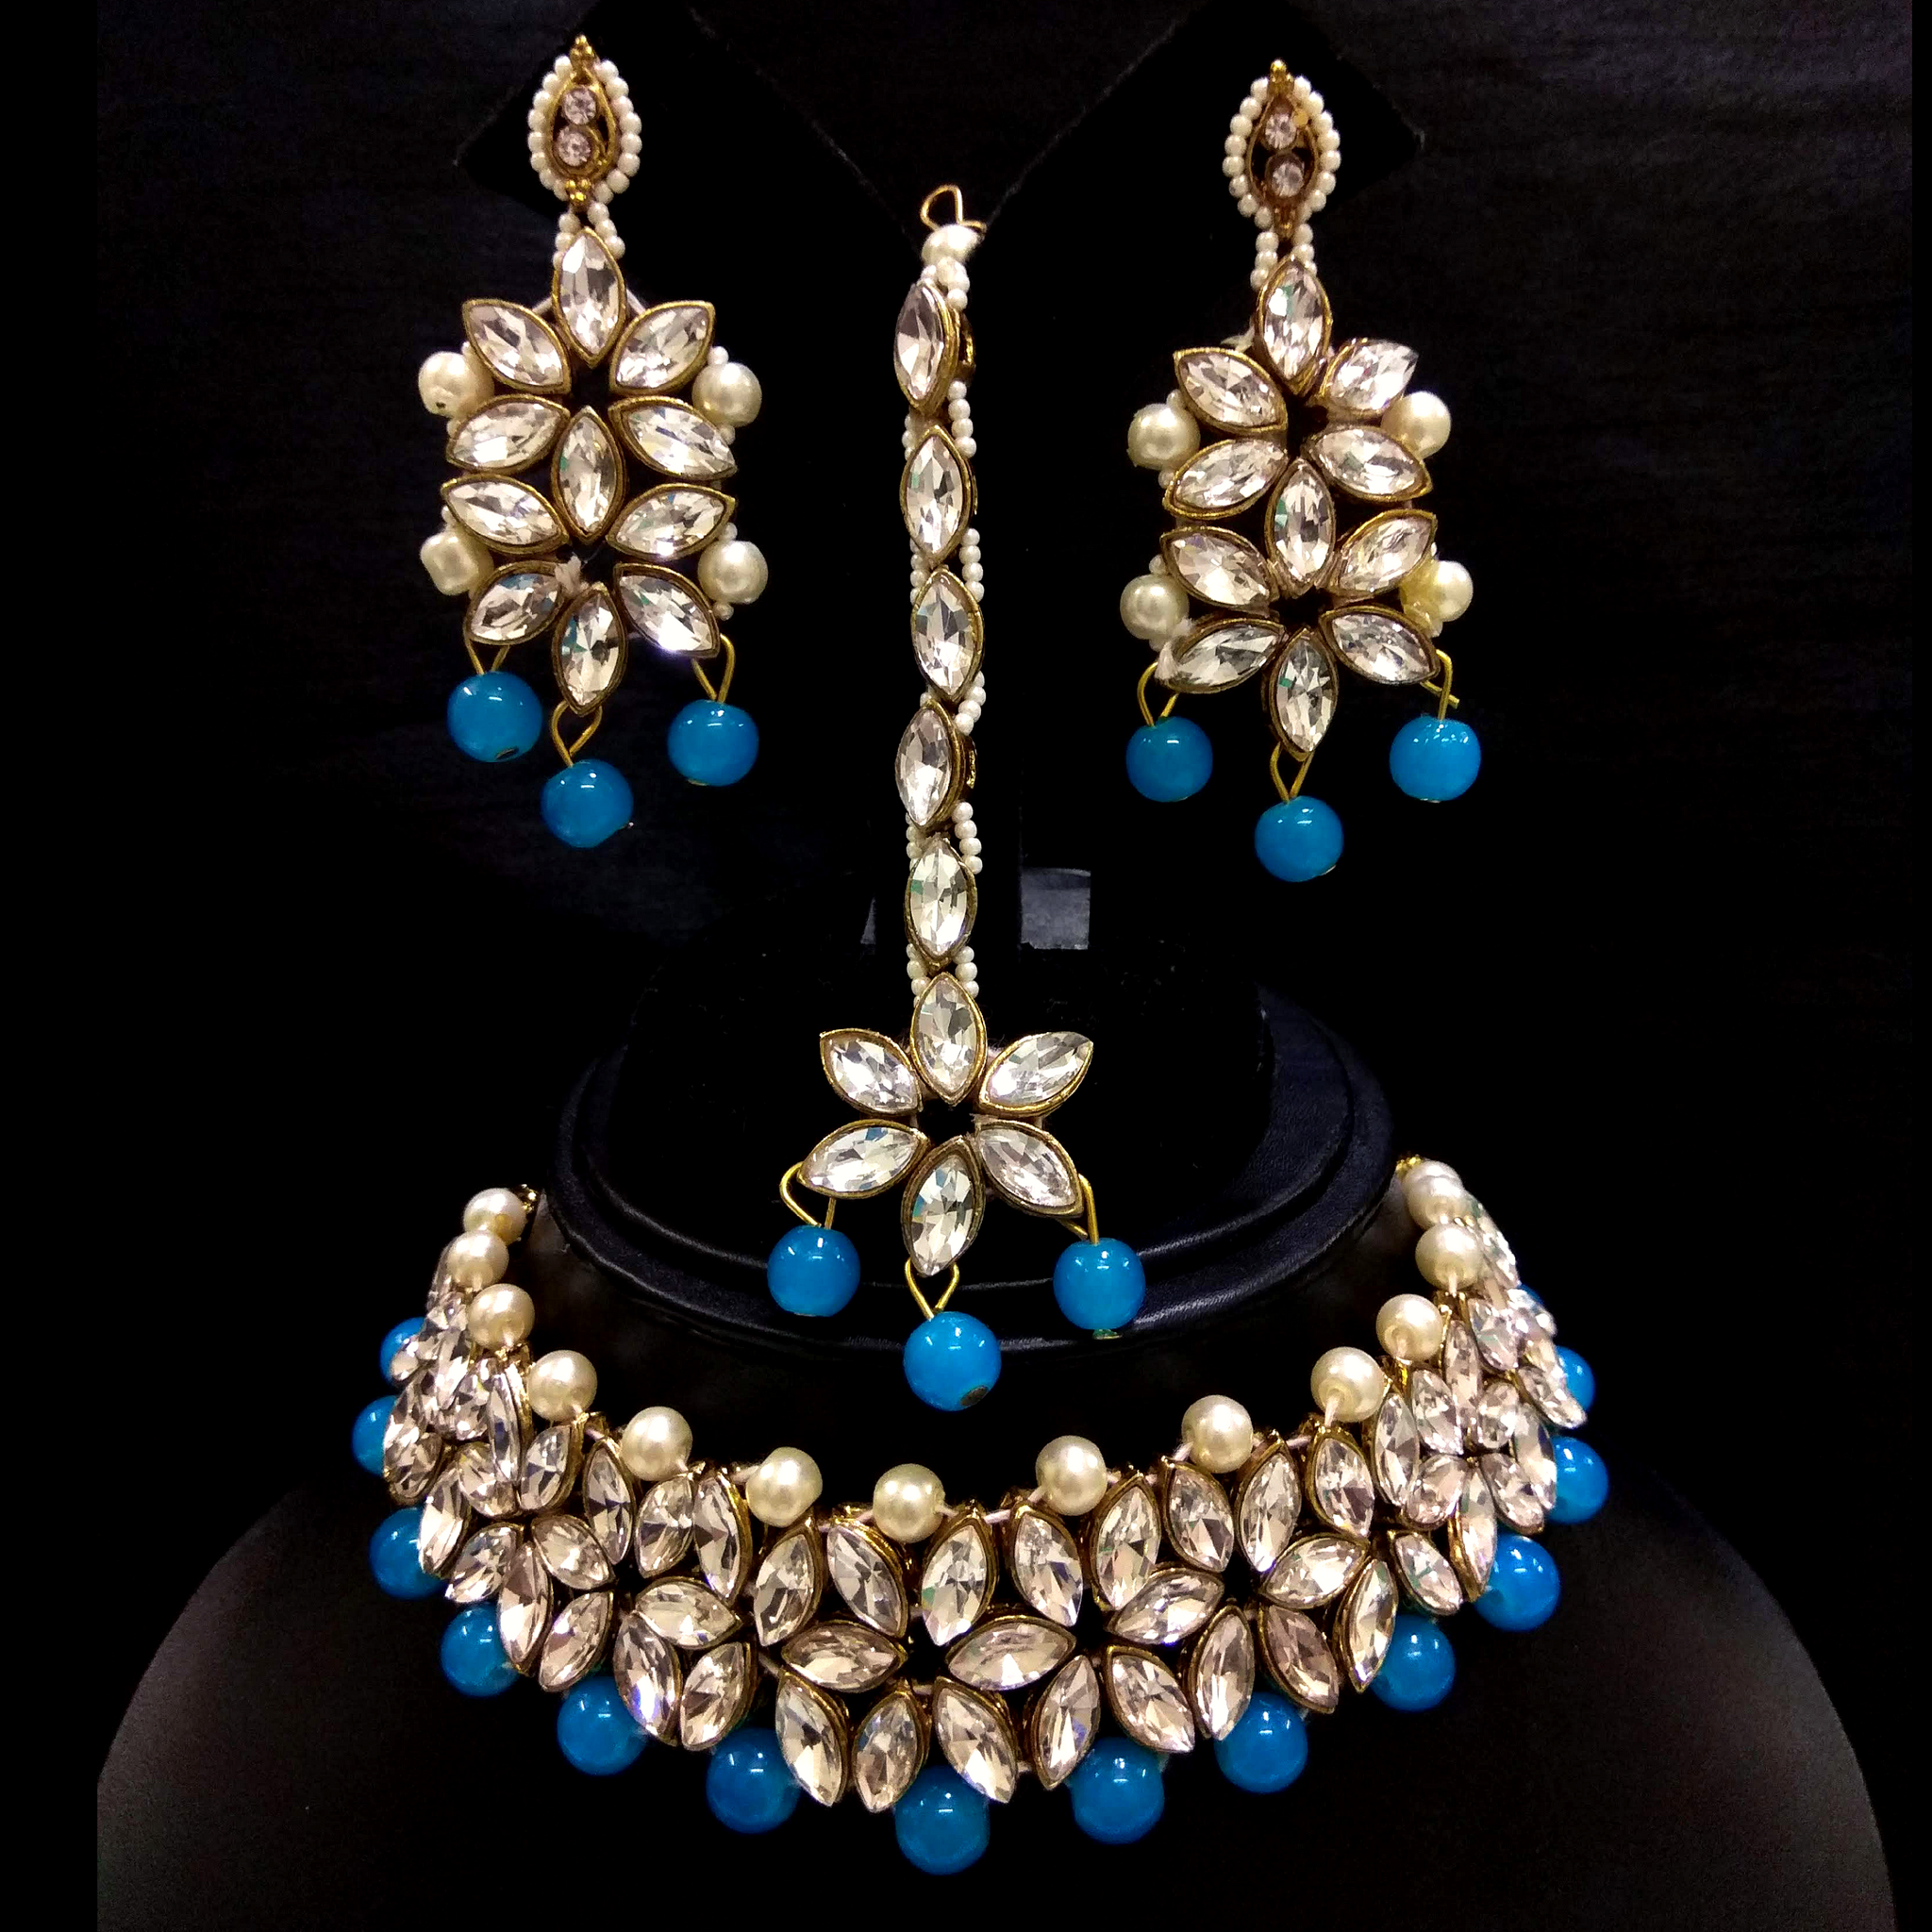 Firozi Choker Necklace Set in Kundan and Moti Work - White Firozi